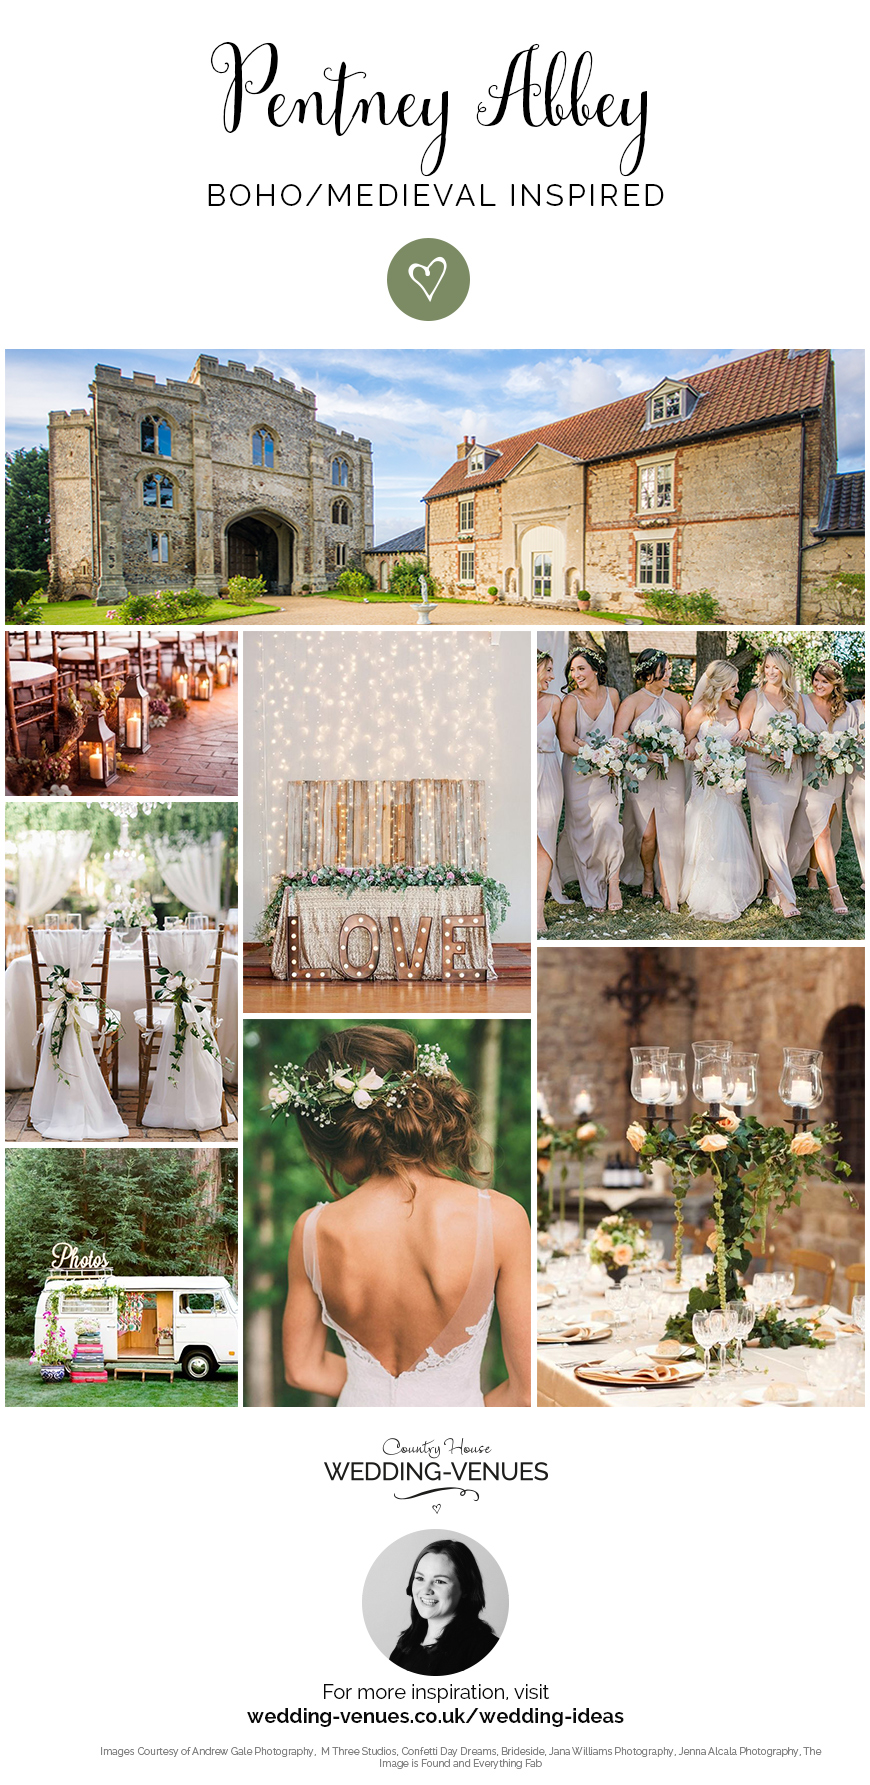 Our Venue Specialist's Perfect Wedding At Pentney Abbey | CHWV